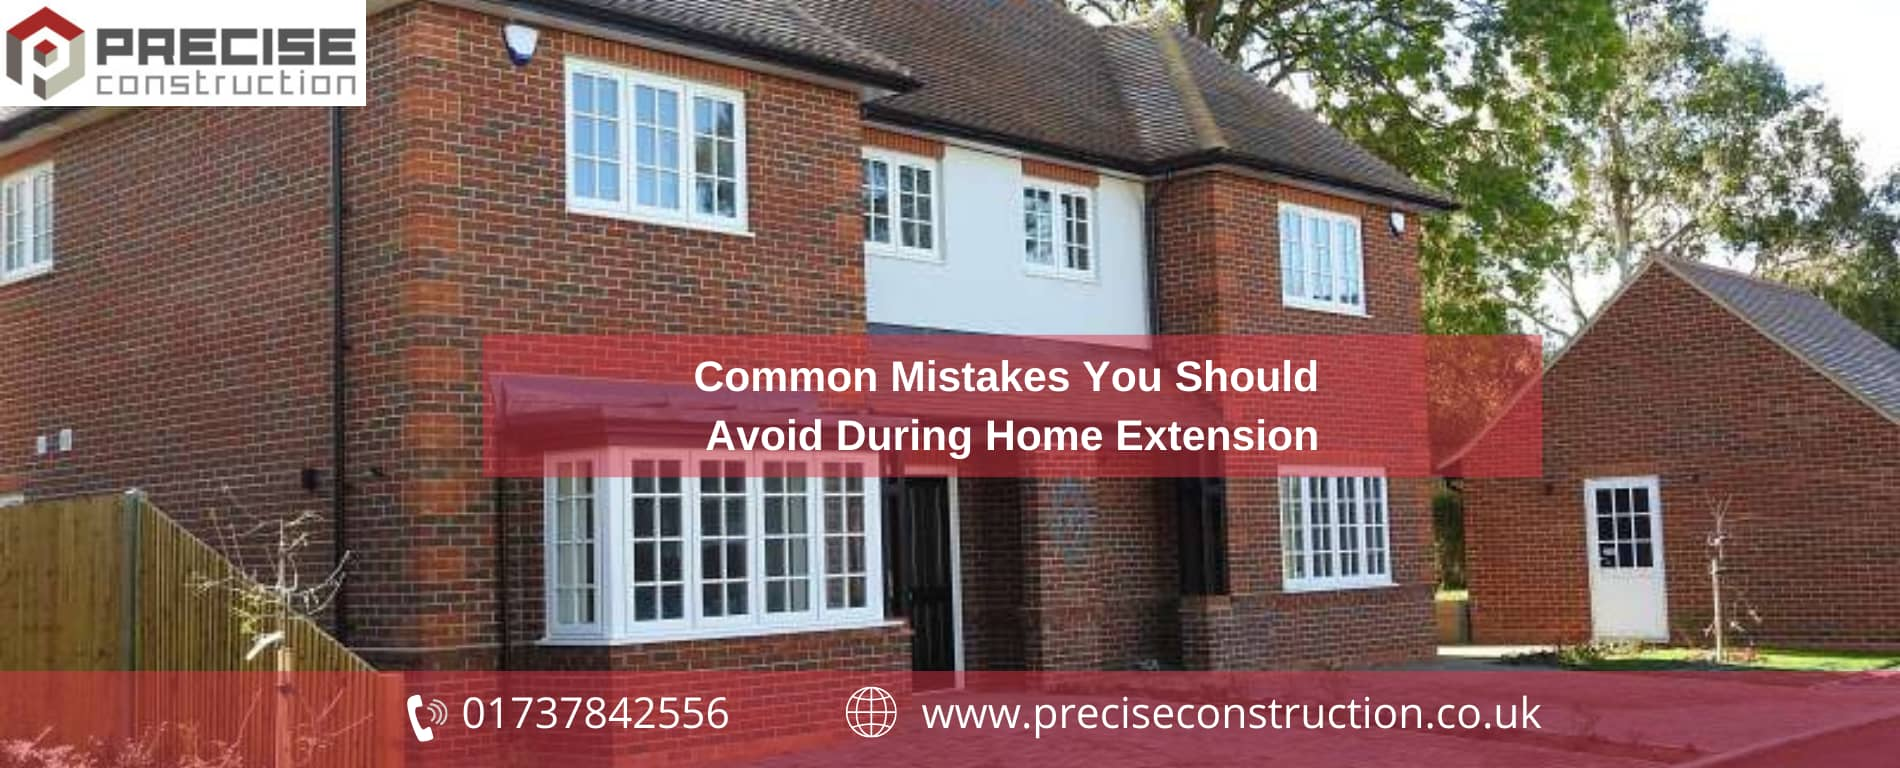 Common Mistakes You Should Avoid During Home Extension